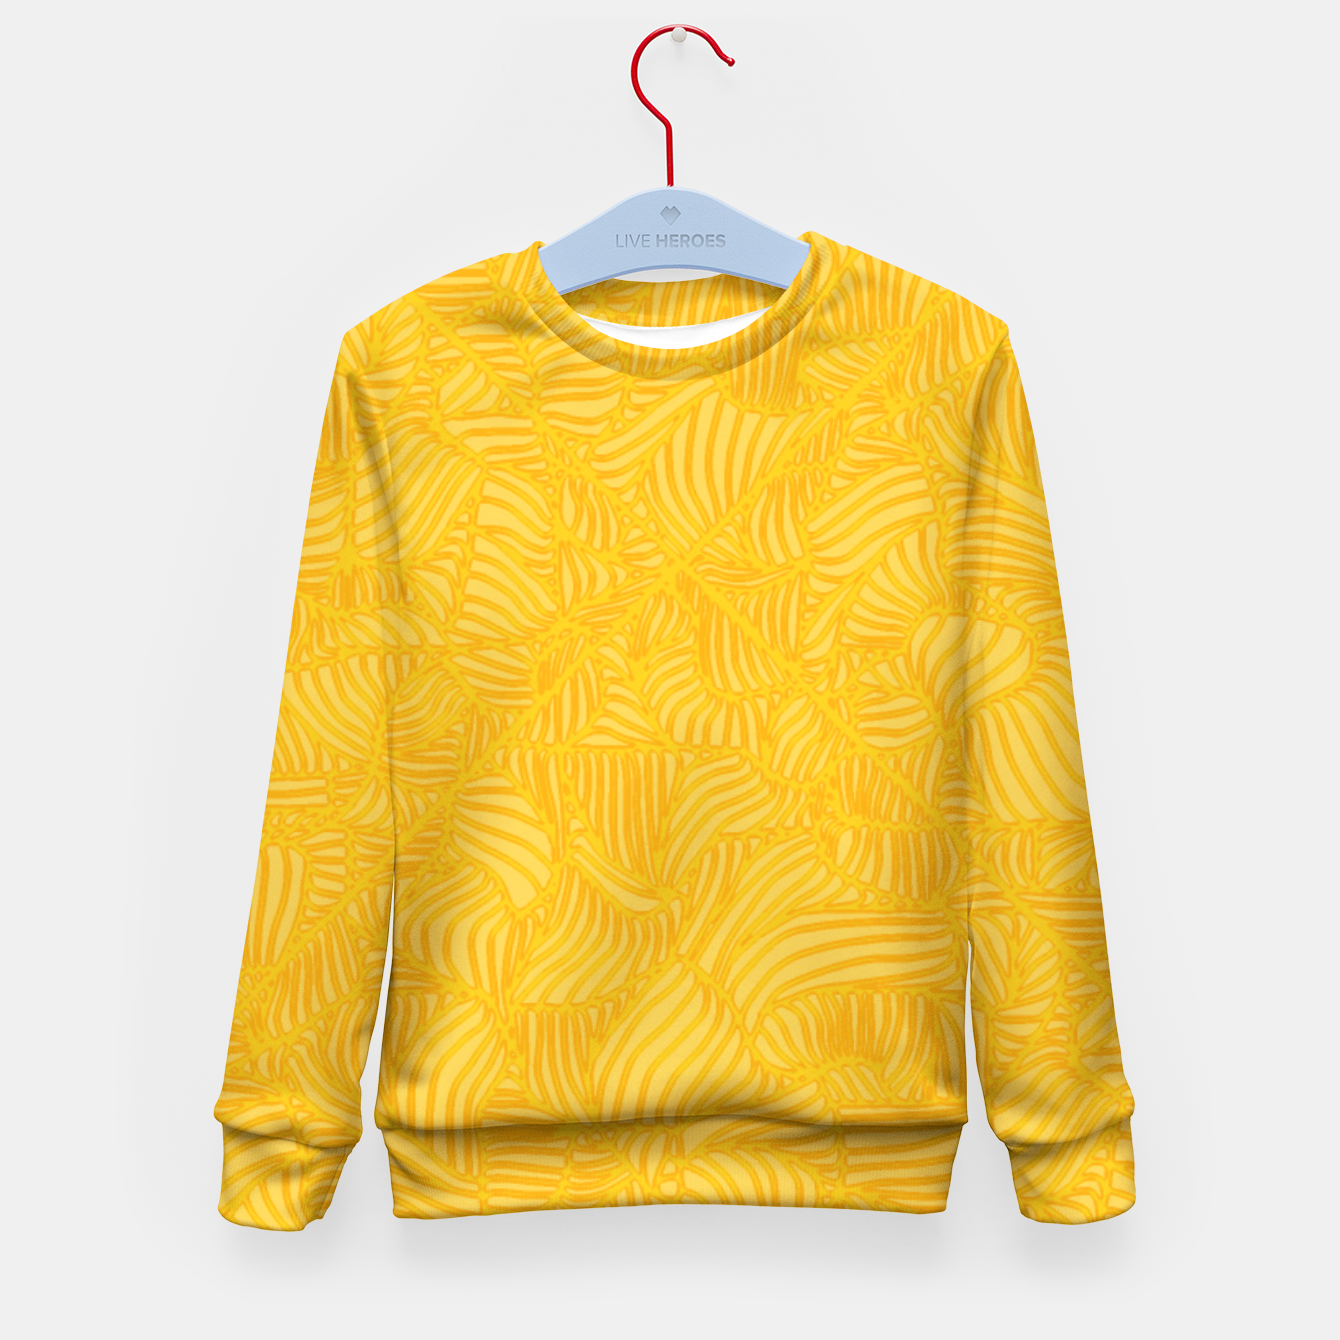 Image of yellow Kid's Sweater - Live Heroes